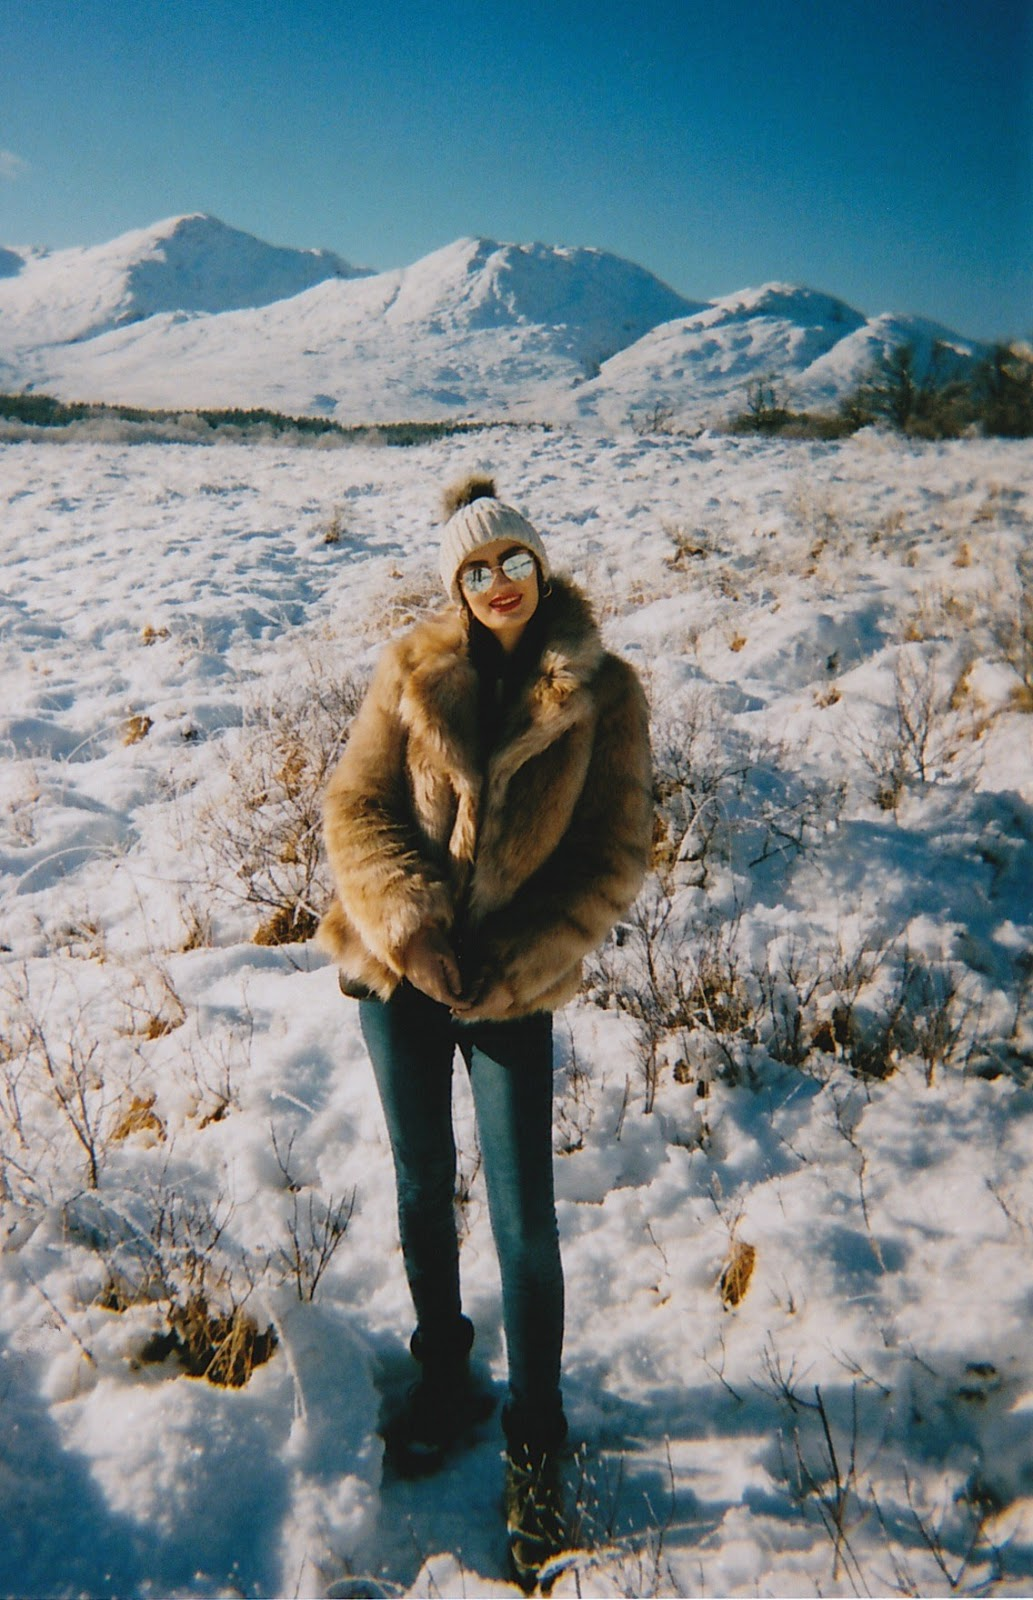 winter moments on 35mm film